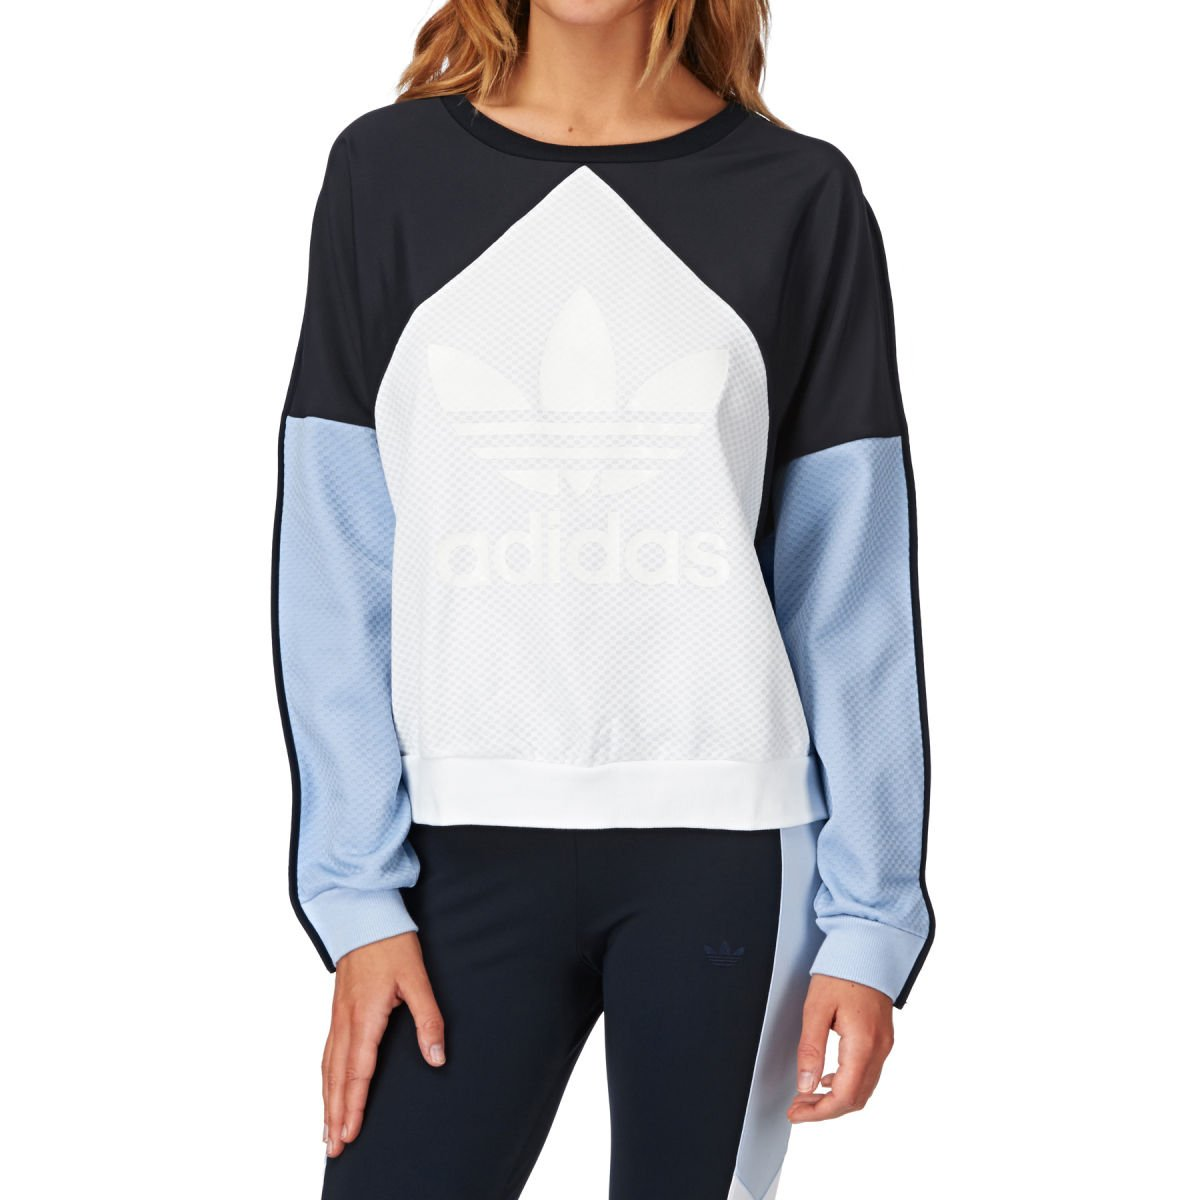 Helsinki Authentic Sweatshirt